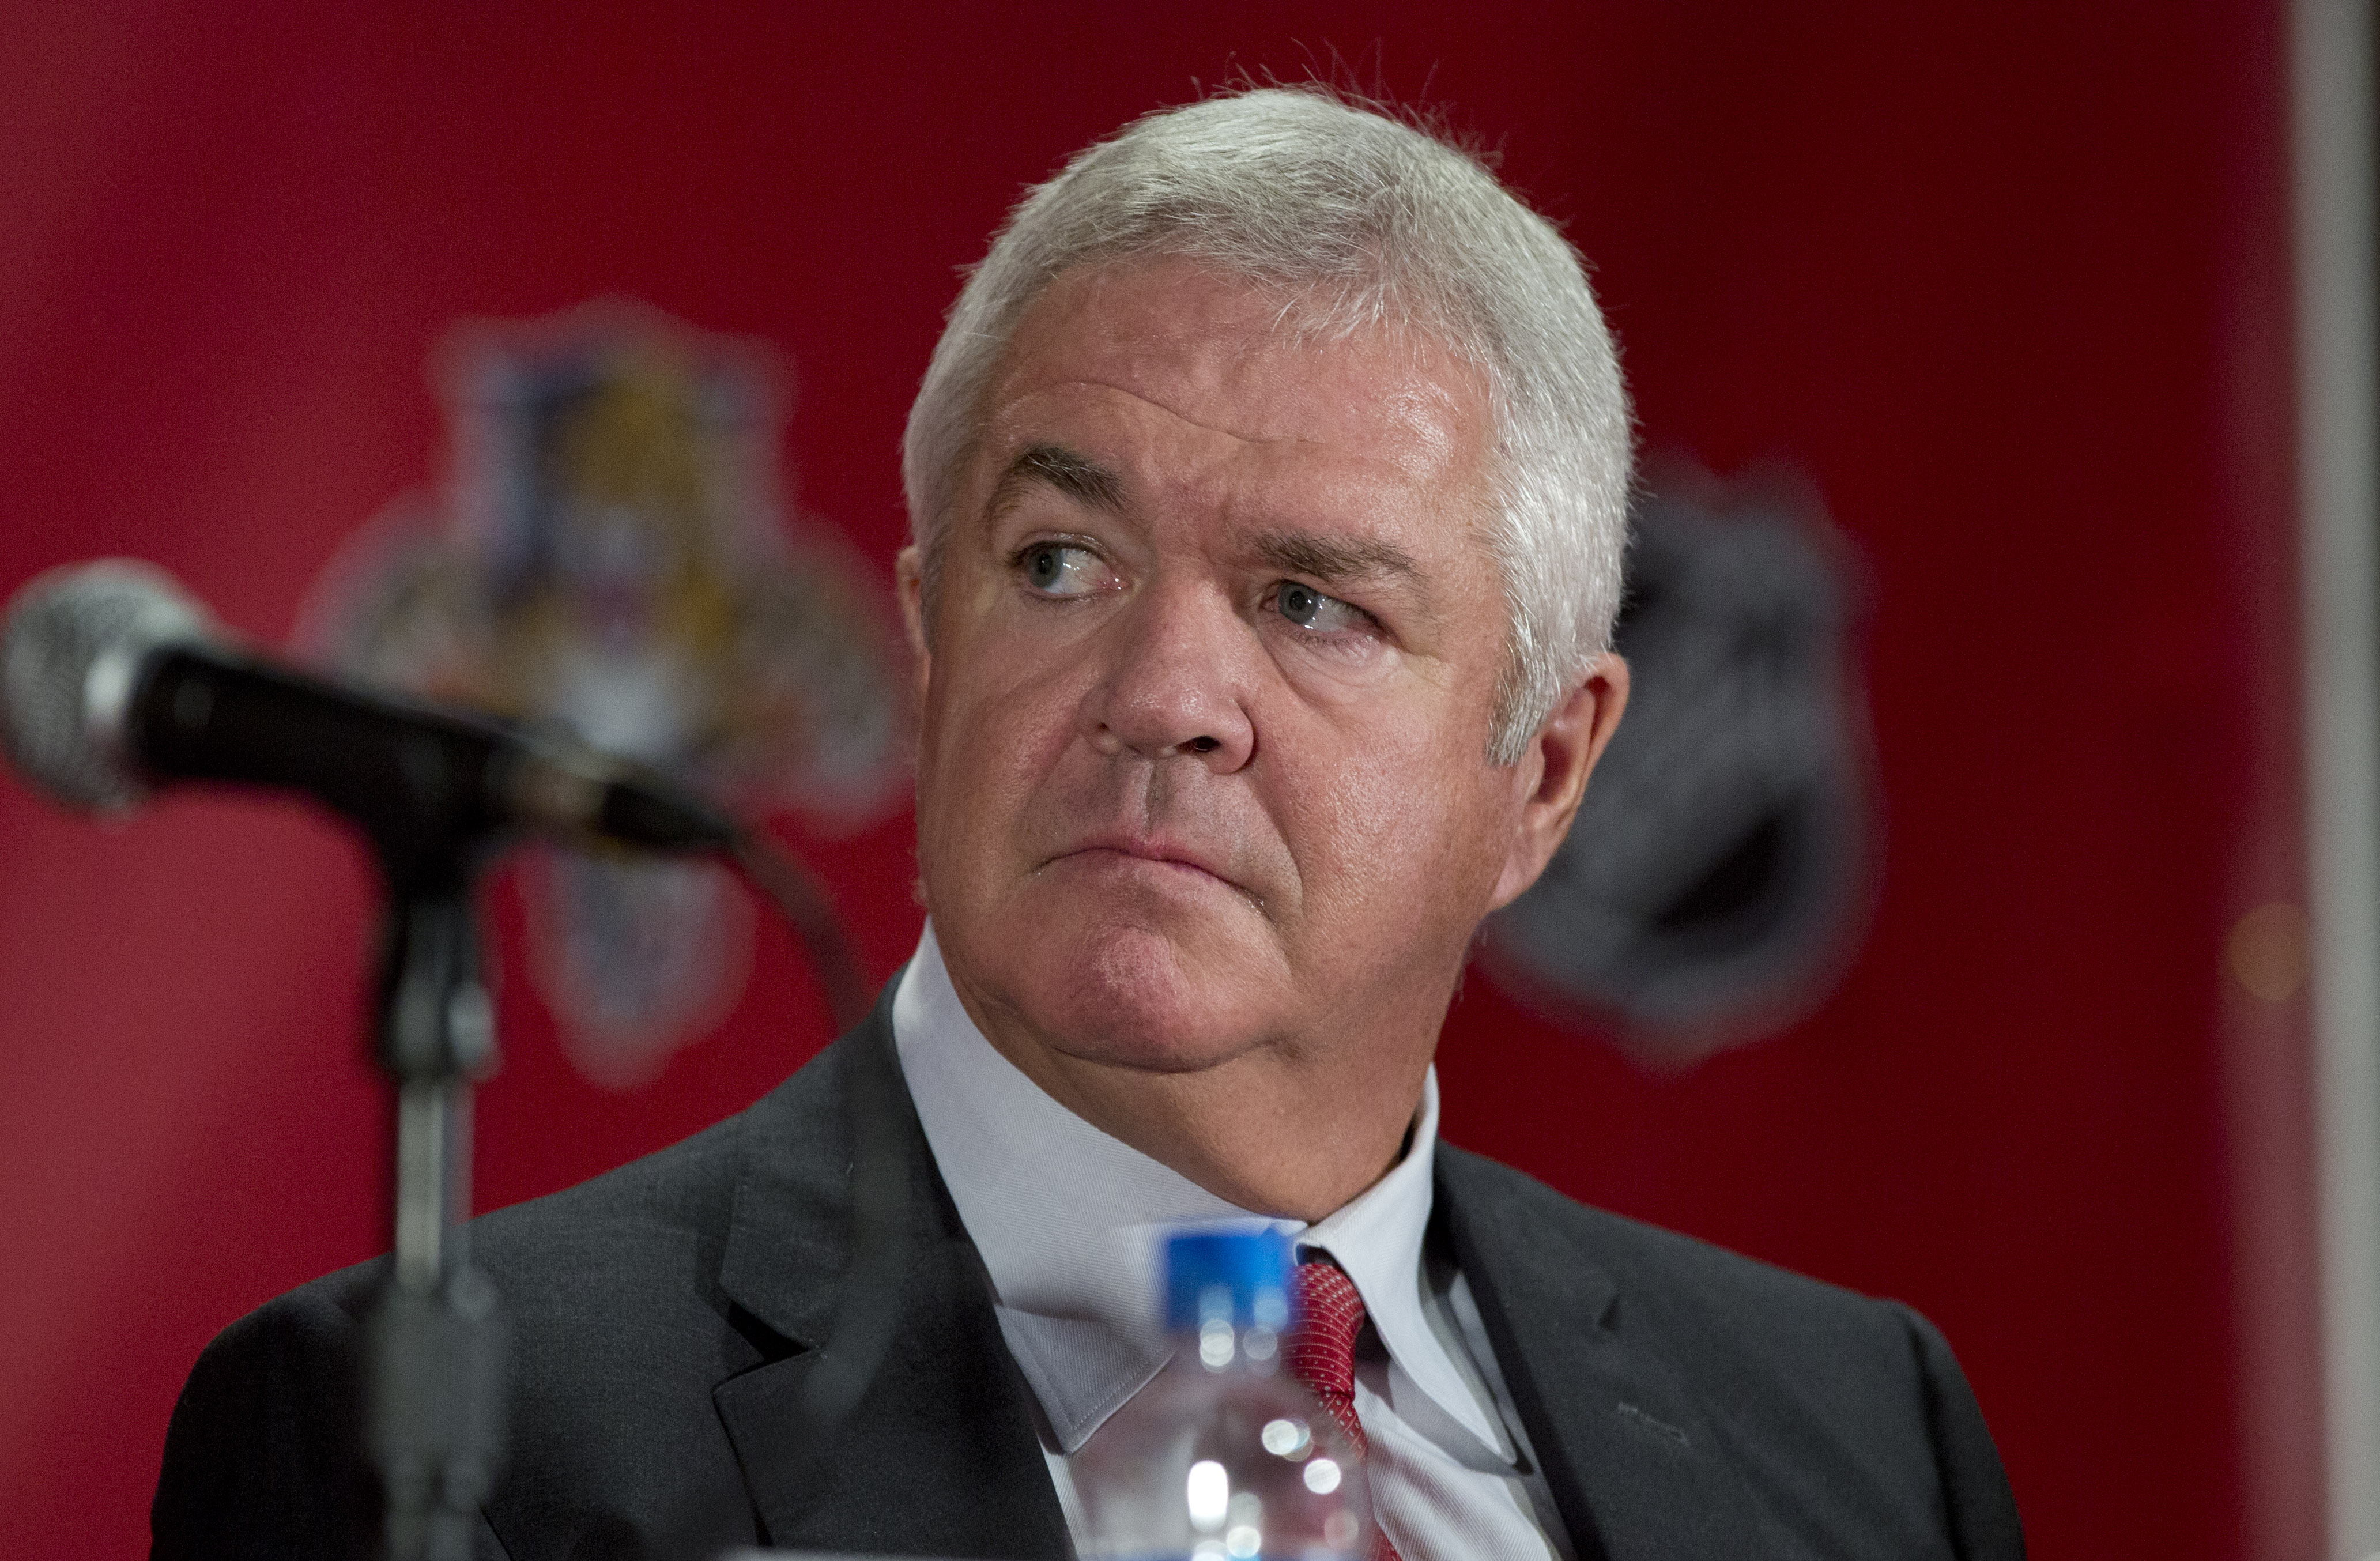 FILE - In this Sept. 27, 2013, file photo, Dale Tallon, the Florida Panthers' executive vice president and general manager, listens during an NHL hockey press conference in Sunrise, Fla. Much of the groundwork for Chicago's run as the NHL's dominant team,